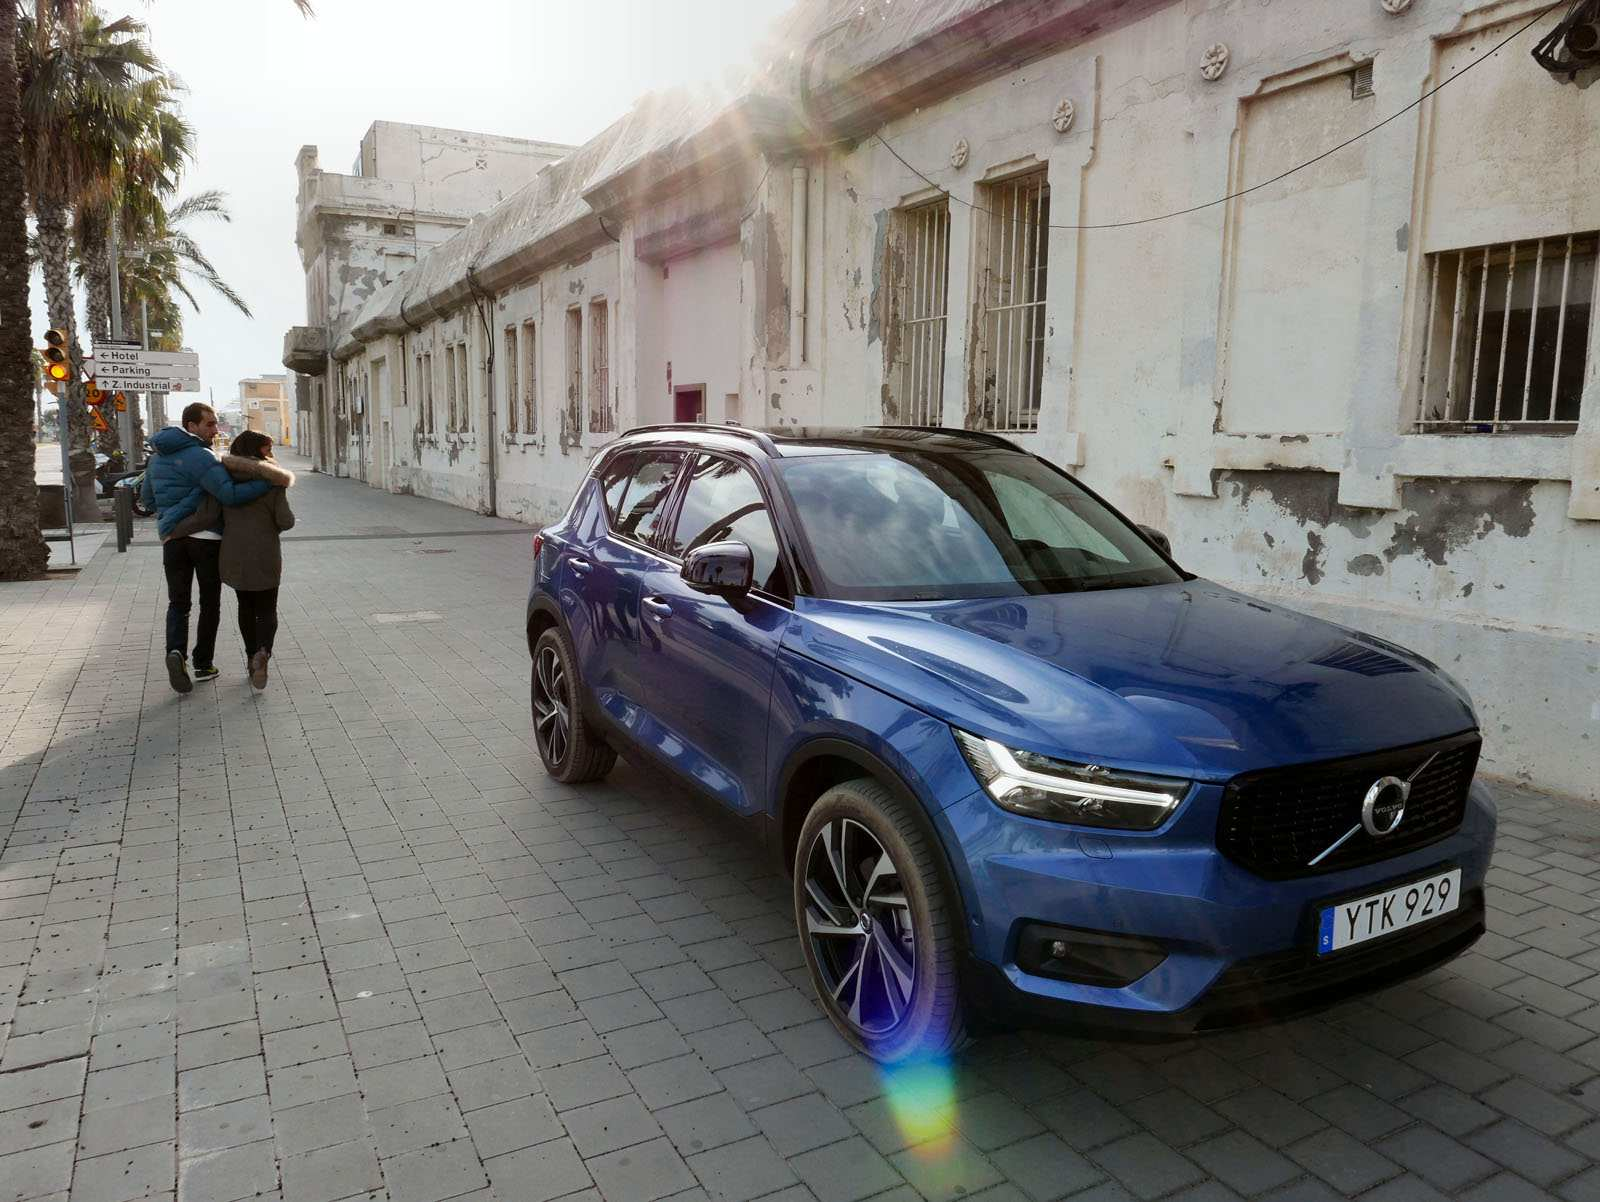 96 Gallery of 2019 Volvo Xc40 Mpg Wallpaper with 2019 Volvo Xc40 Mpg